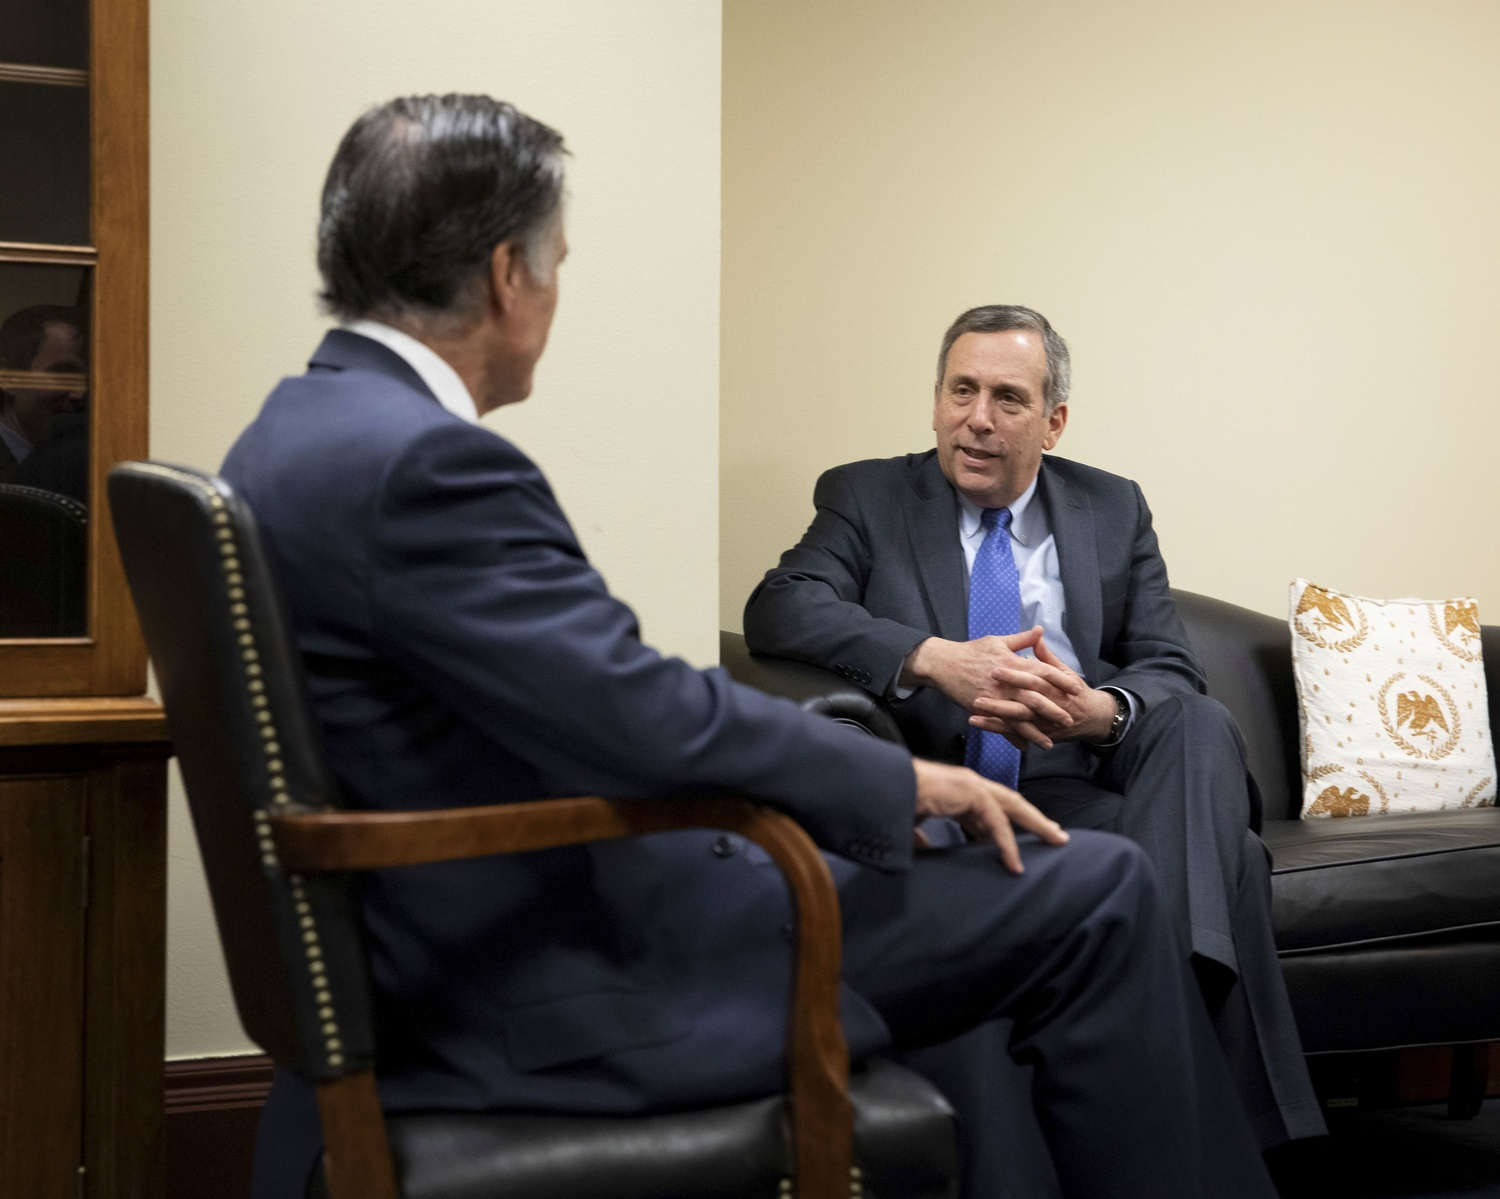 University President Lawrence S. Bacow met with Senator Mitt Romney Friday as part of a series of meetings in Washington, D.C.